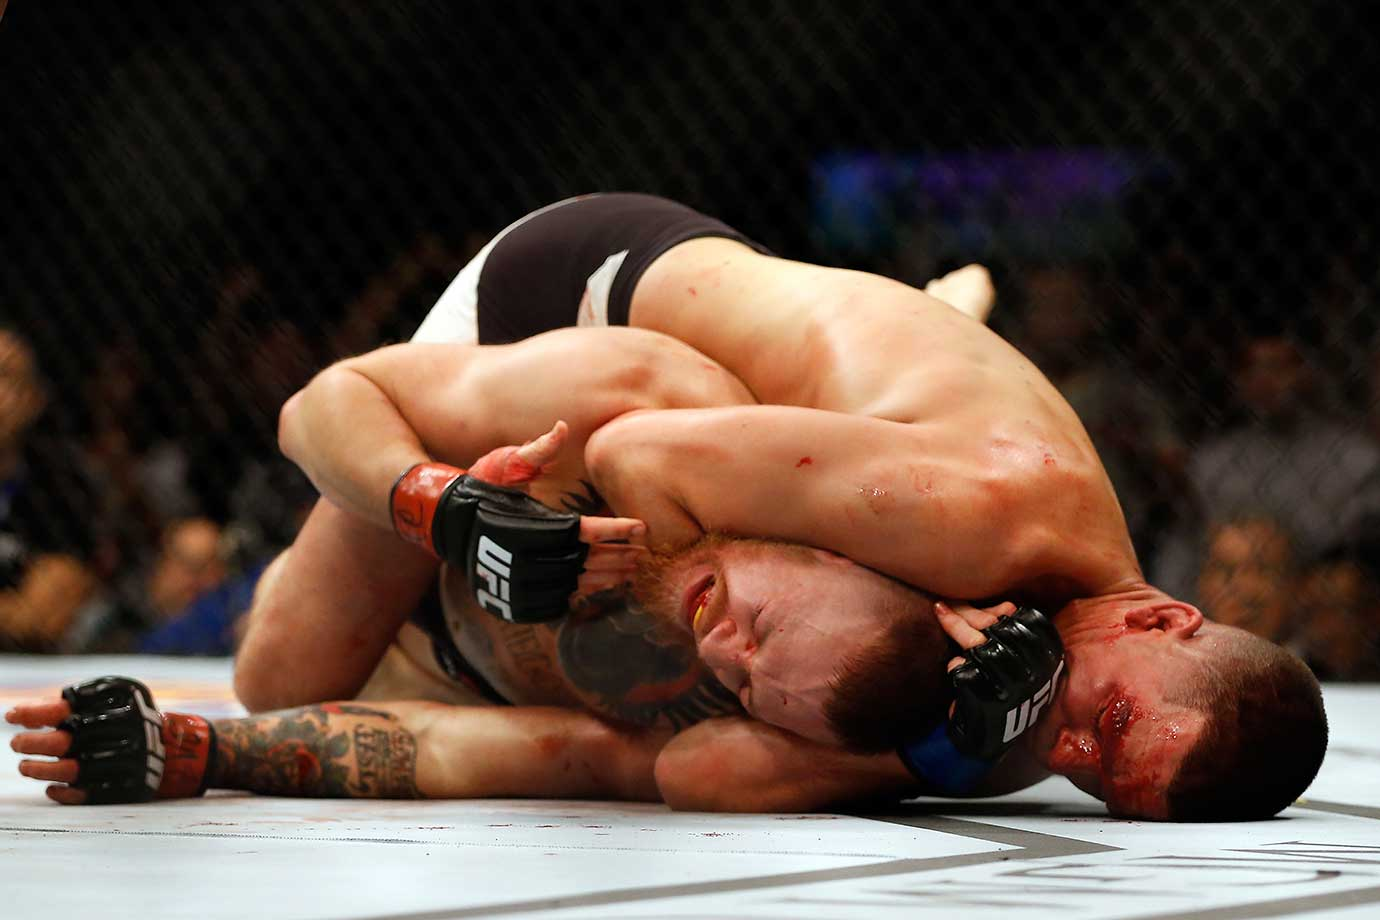 Nate Diaz attempts to submit Conor McGregor of Ireland in their welterweight bout at UFC 196. Diaz ended up winning the fight in the second round.